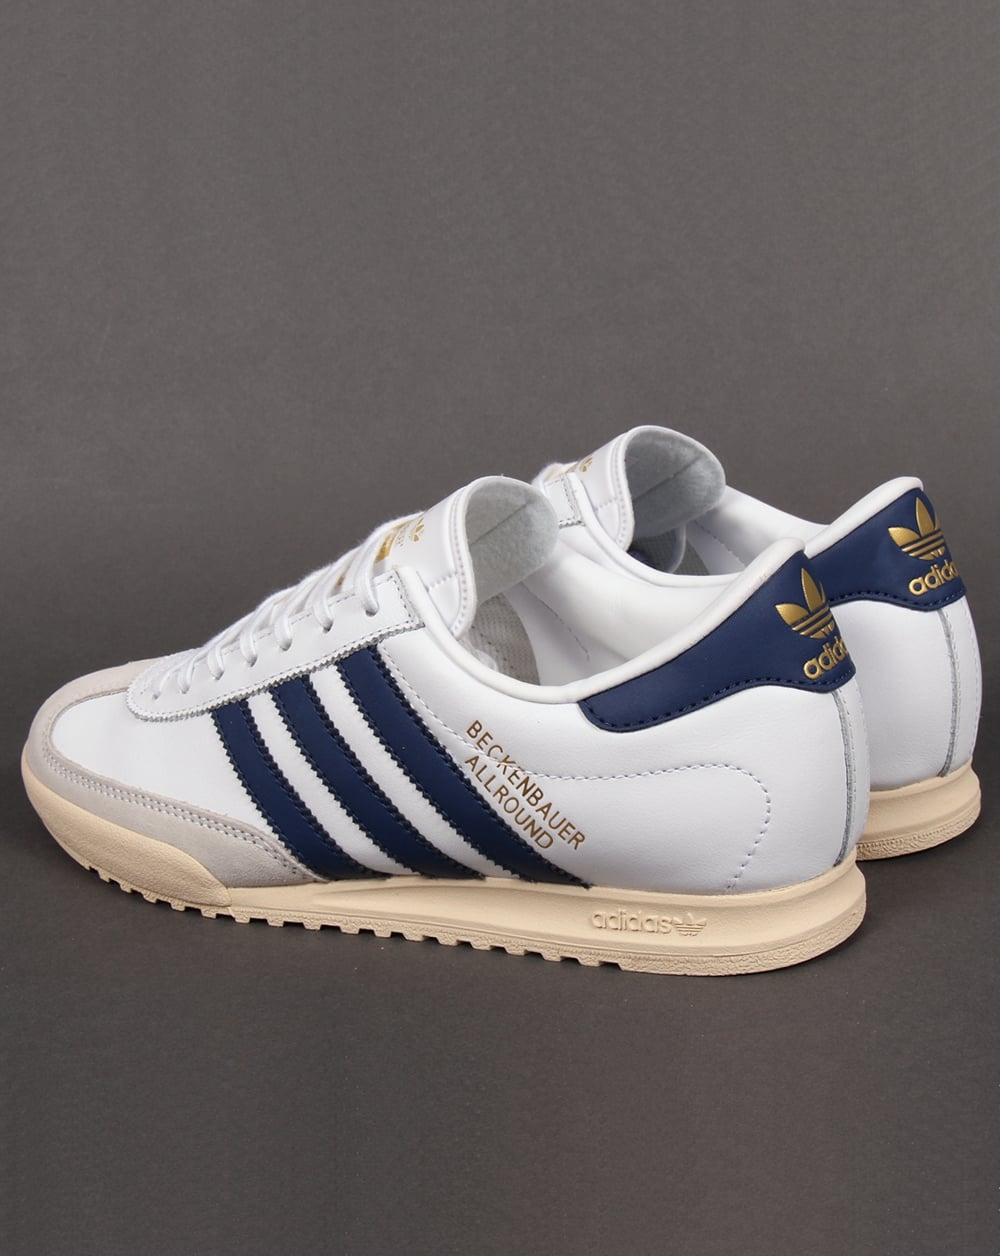 finest selection 5d2a4 ef476 Adidas Beckenbauer Trainers White navy gold